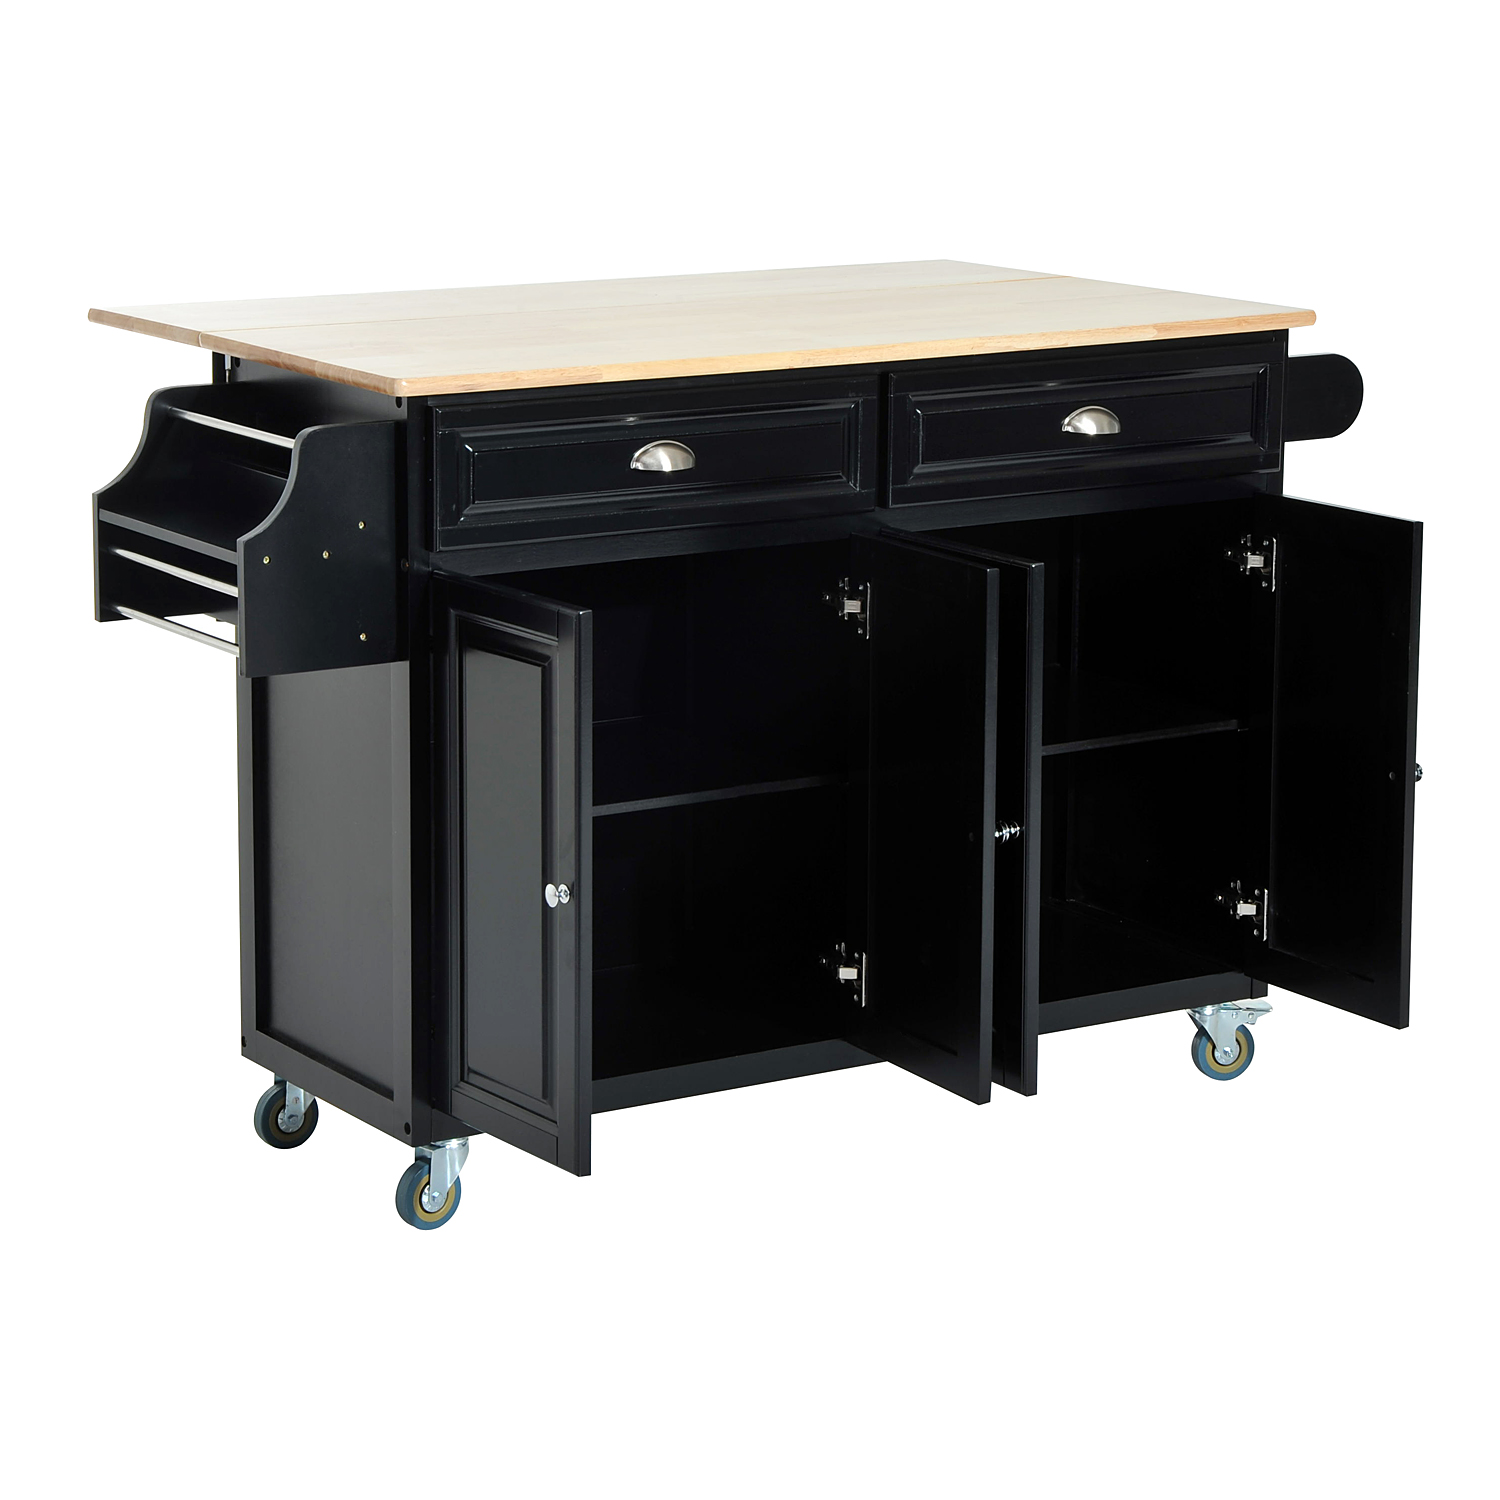 HomCom Kitchen Island   Modern Rolling Storage Cart On Wheels With Wood Top  (Black)